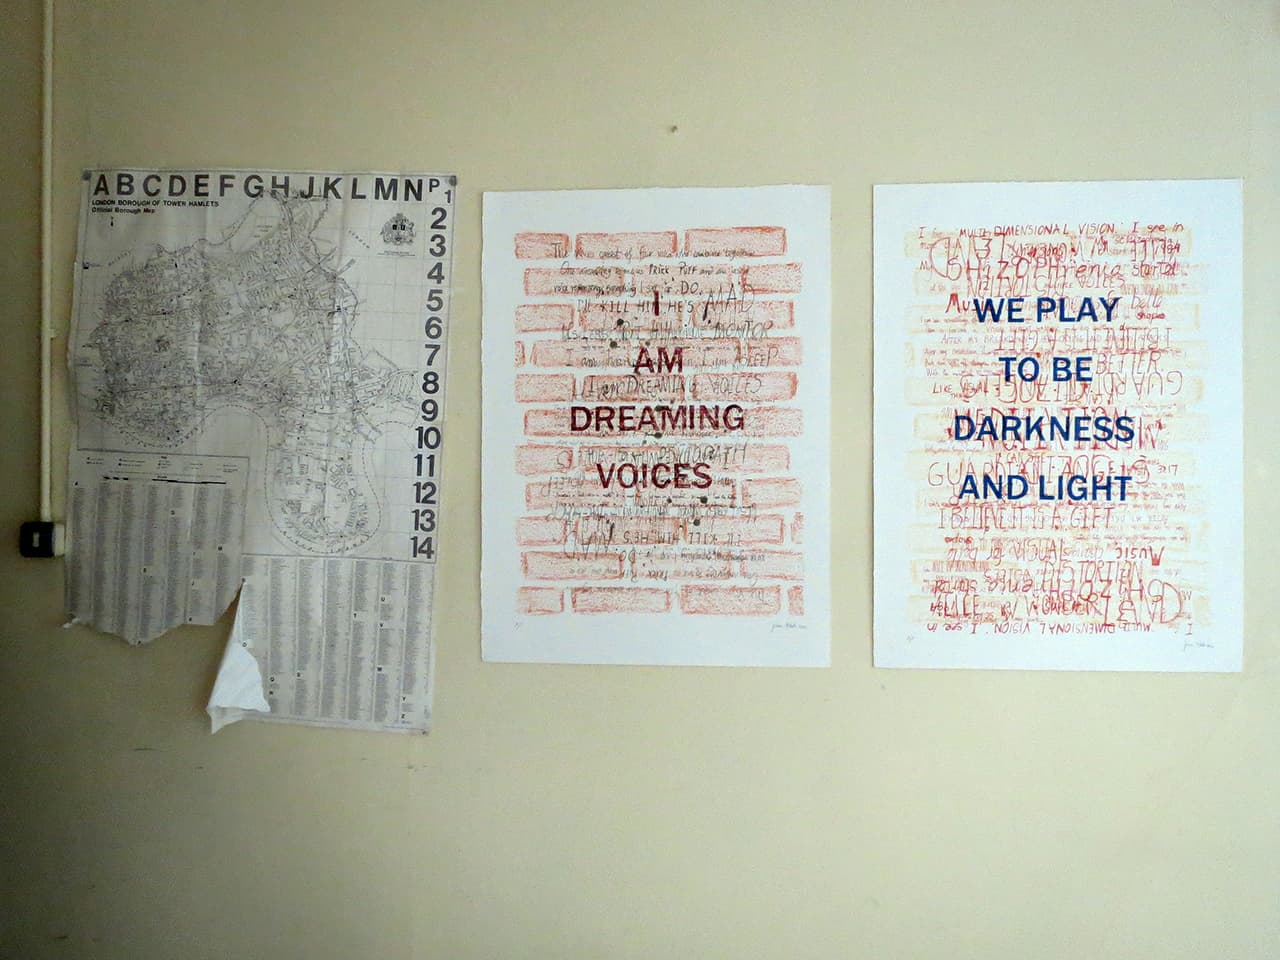 <strong>Dreaming Voices 1 & 2</strong>, installation by Susan Aldworth at St Clement's Hospital, lithographs, 82 x 60 cms each, 2012.